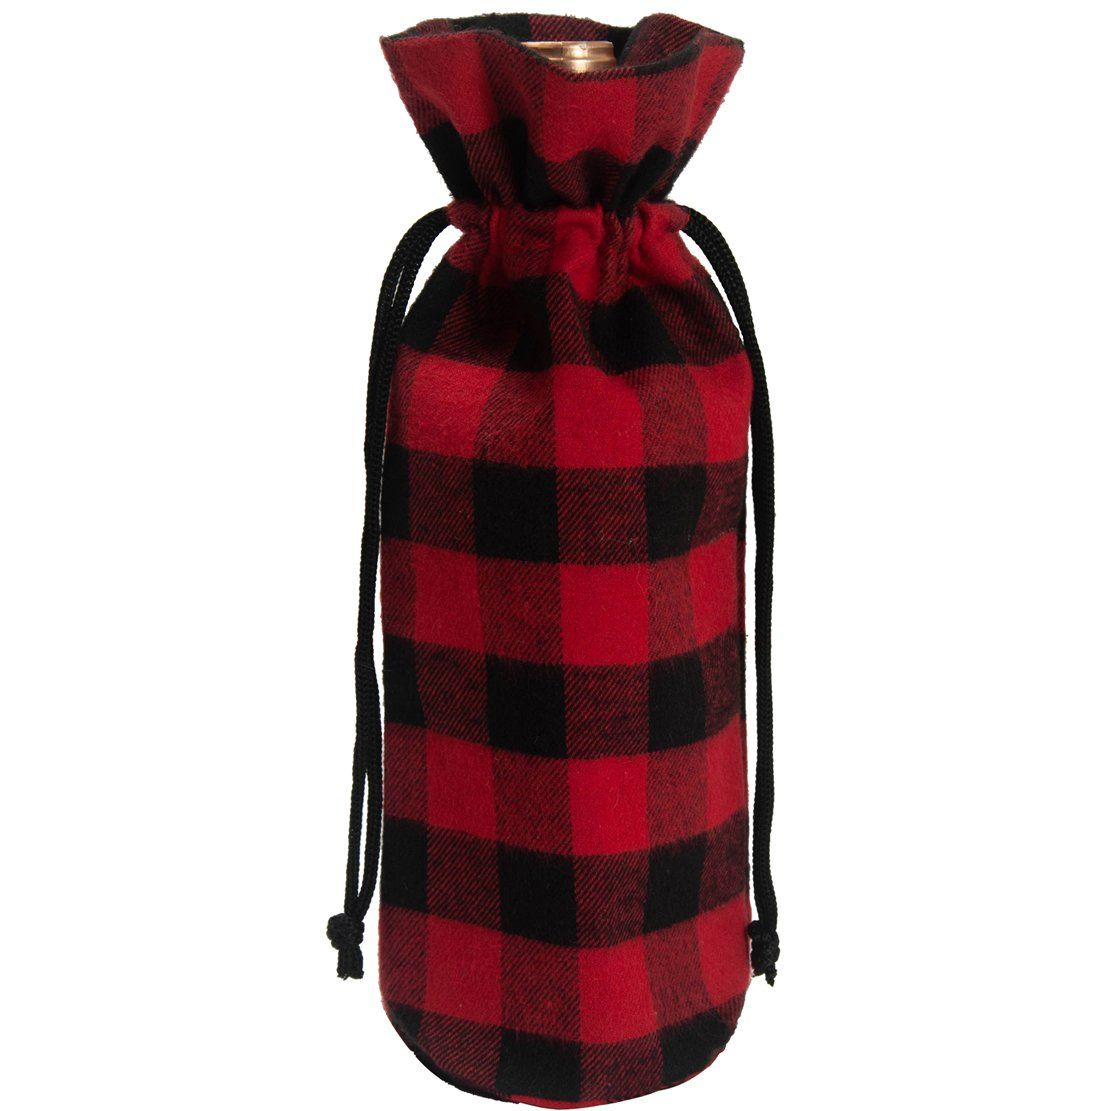 Edldecco Rustic Plaid Wine Bags With Drawstring Red And Black Buffalo Check Wine Bottle Coverspack Of 4 Visit The Im Wine Bag Wine Bottle Covers Wine Bottle